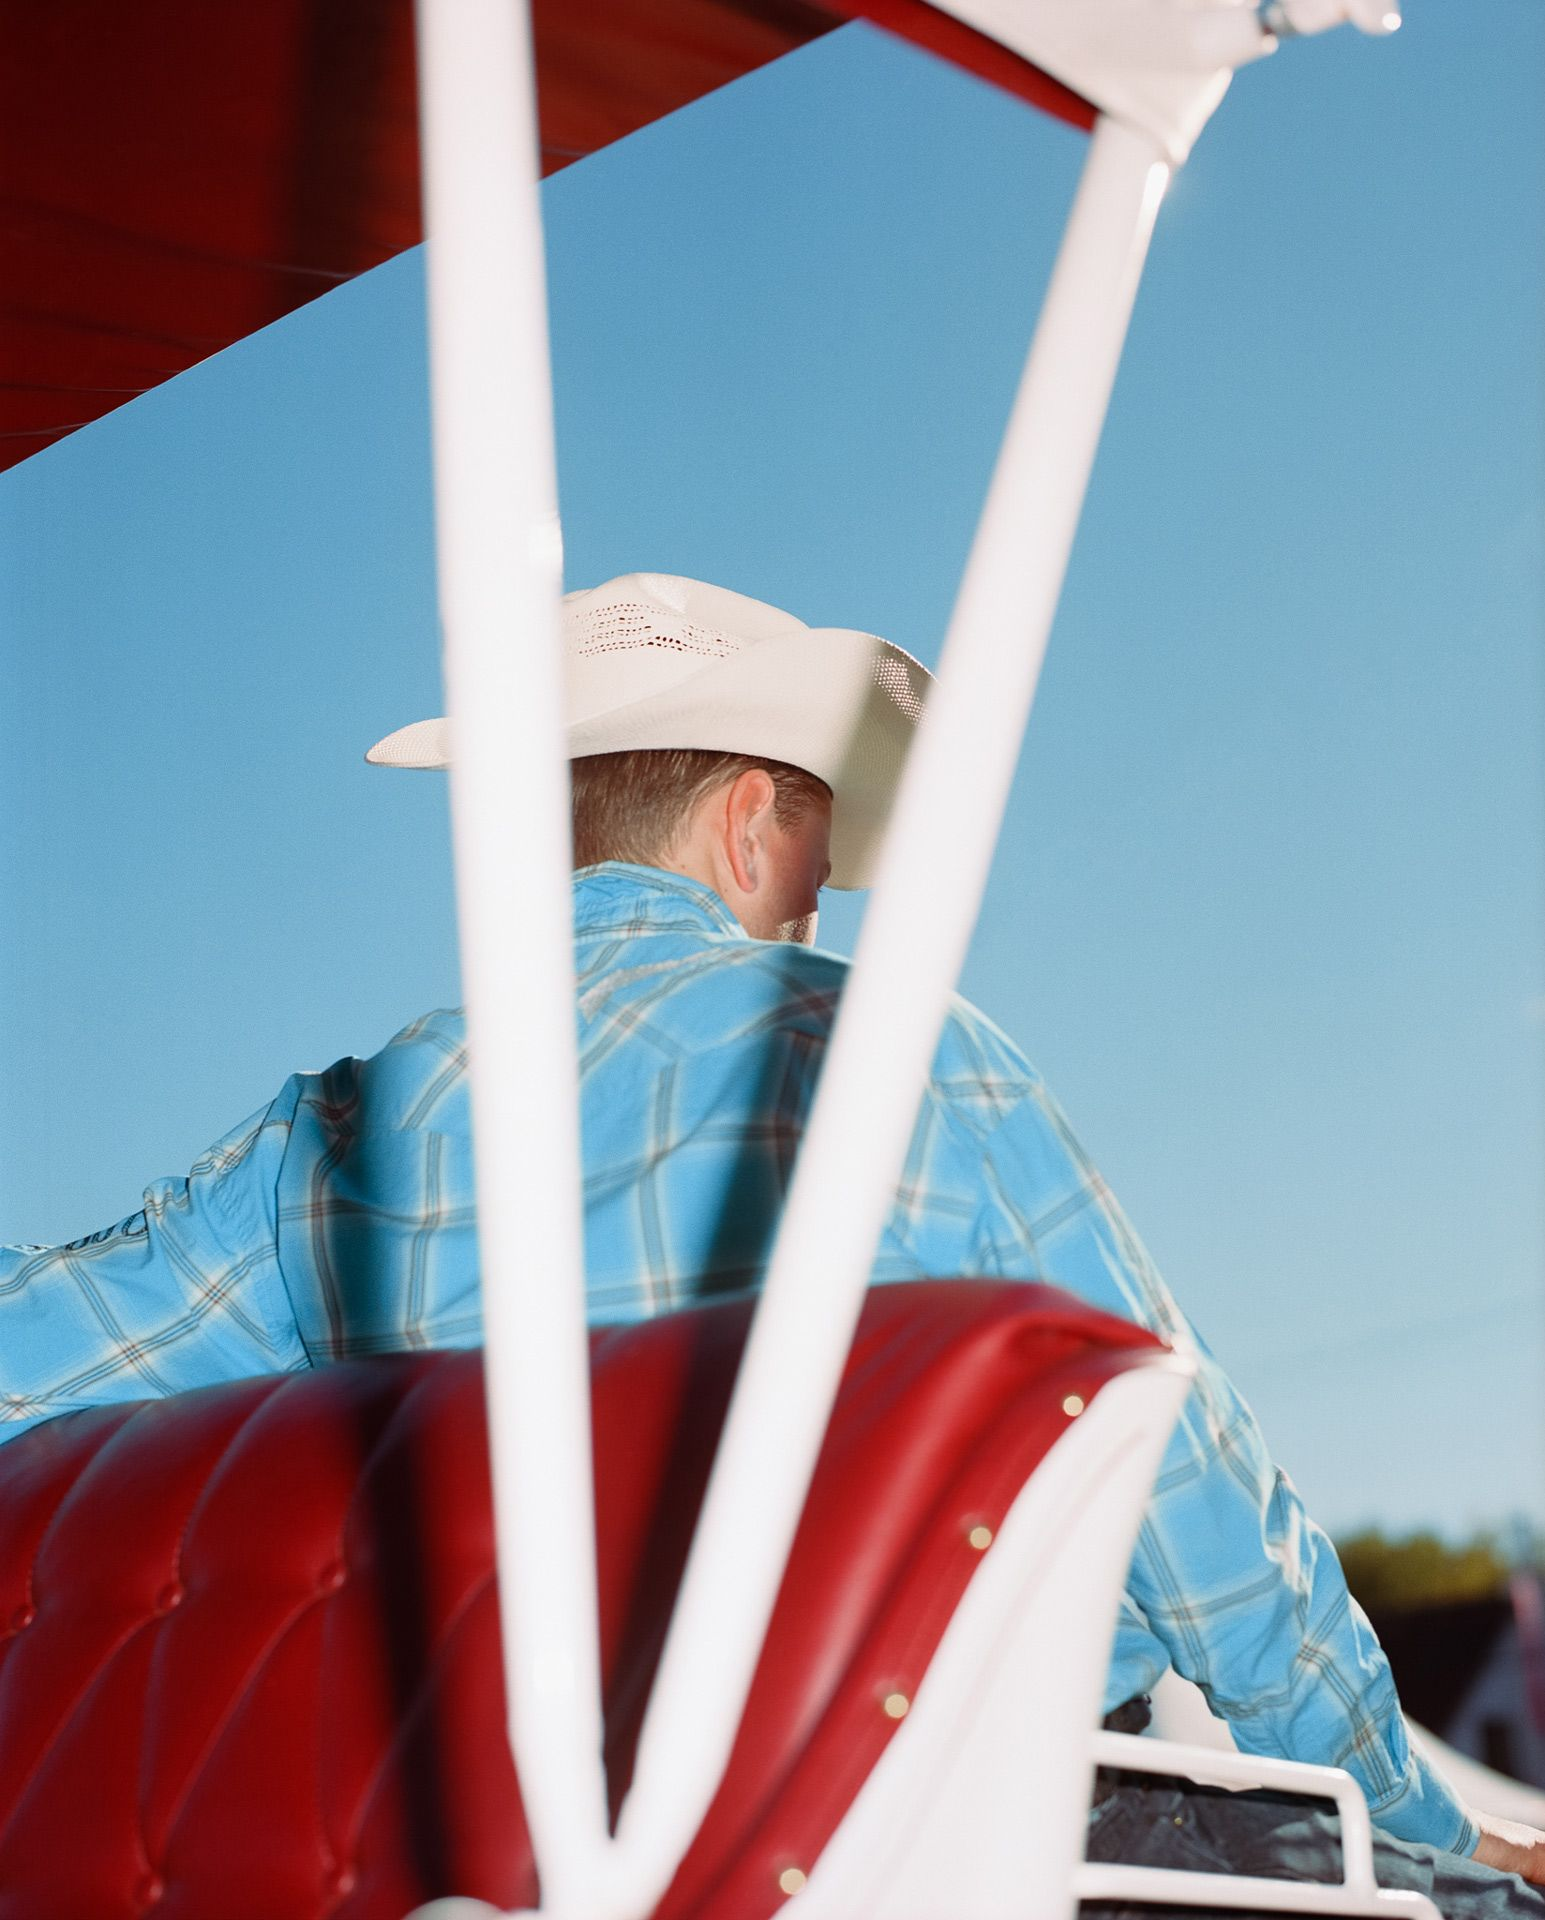 cowboy in charriot by Alexi Hobbs for Larose PAris in St-Tite